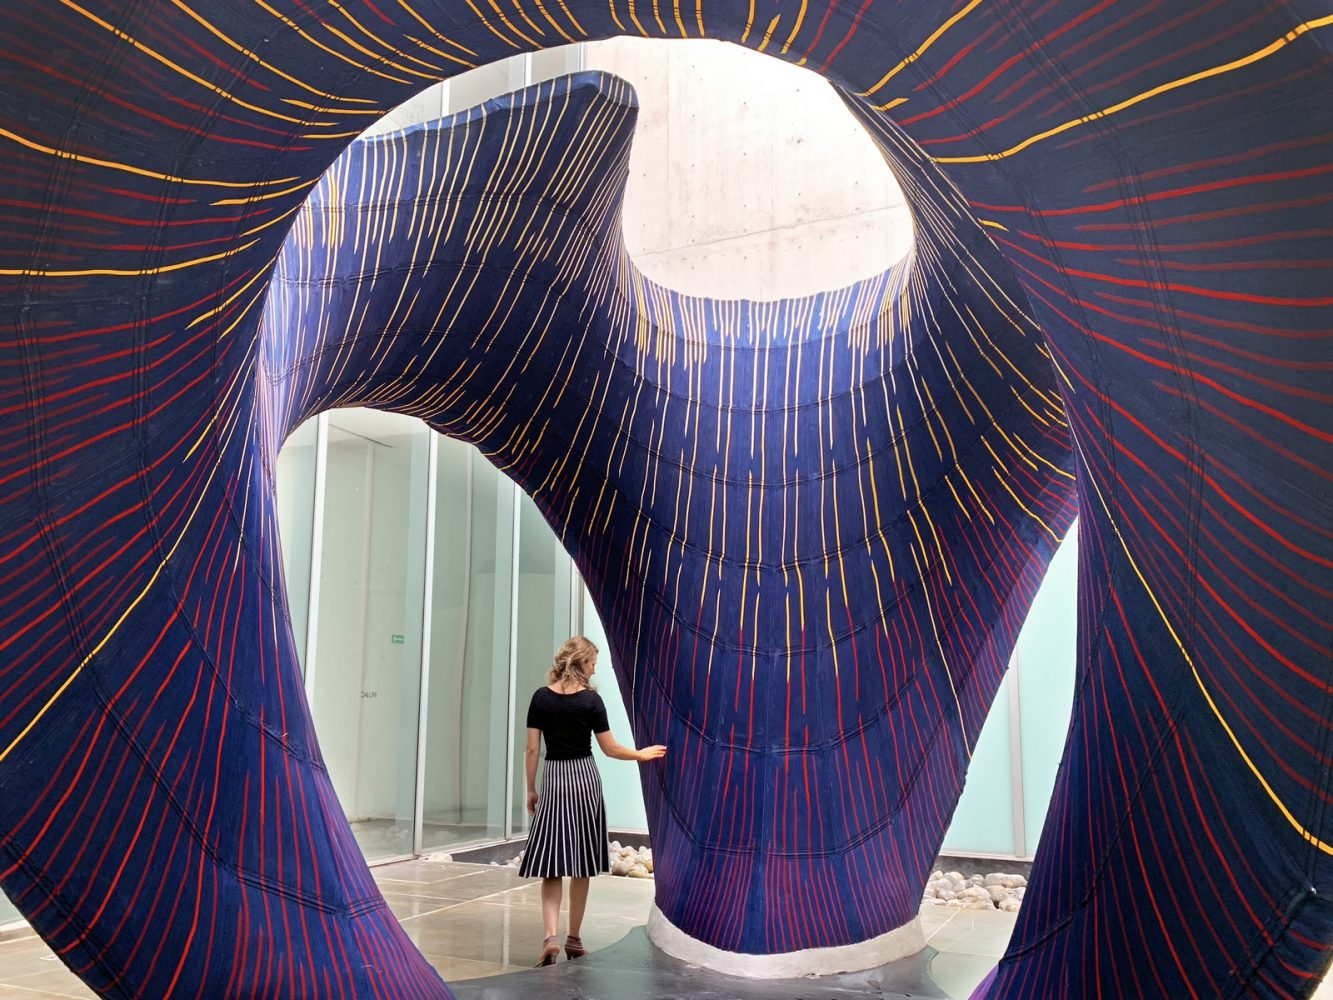 04_ZHA_KnitCandela_Philippe_Block (Copiar)